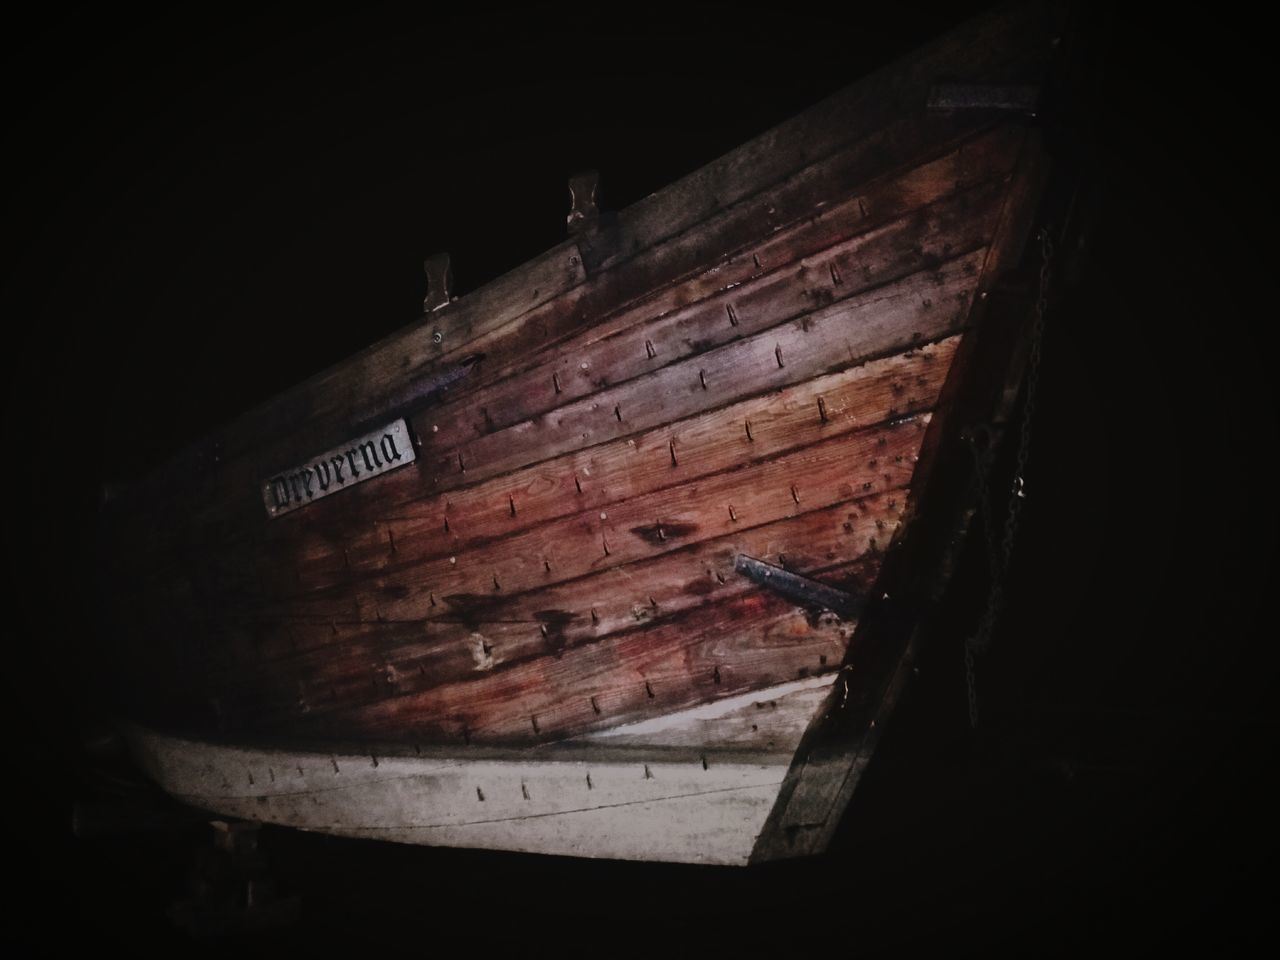 Ship ghost. Night Text Outdoors No People Building Exterior Architecture Ship Nightphotography Scary Dark Photography Boatarde Kurenai Lieblingsteil